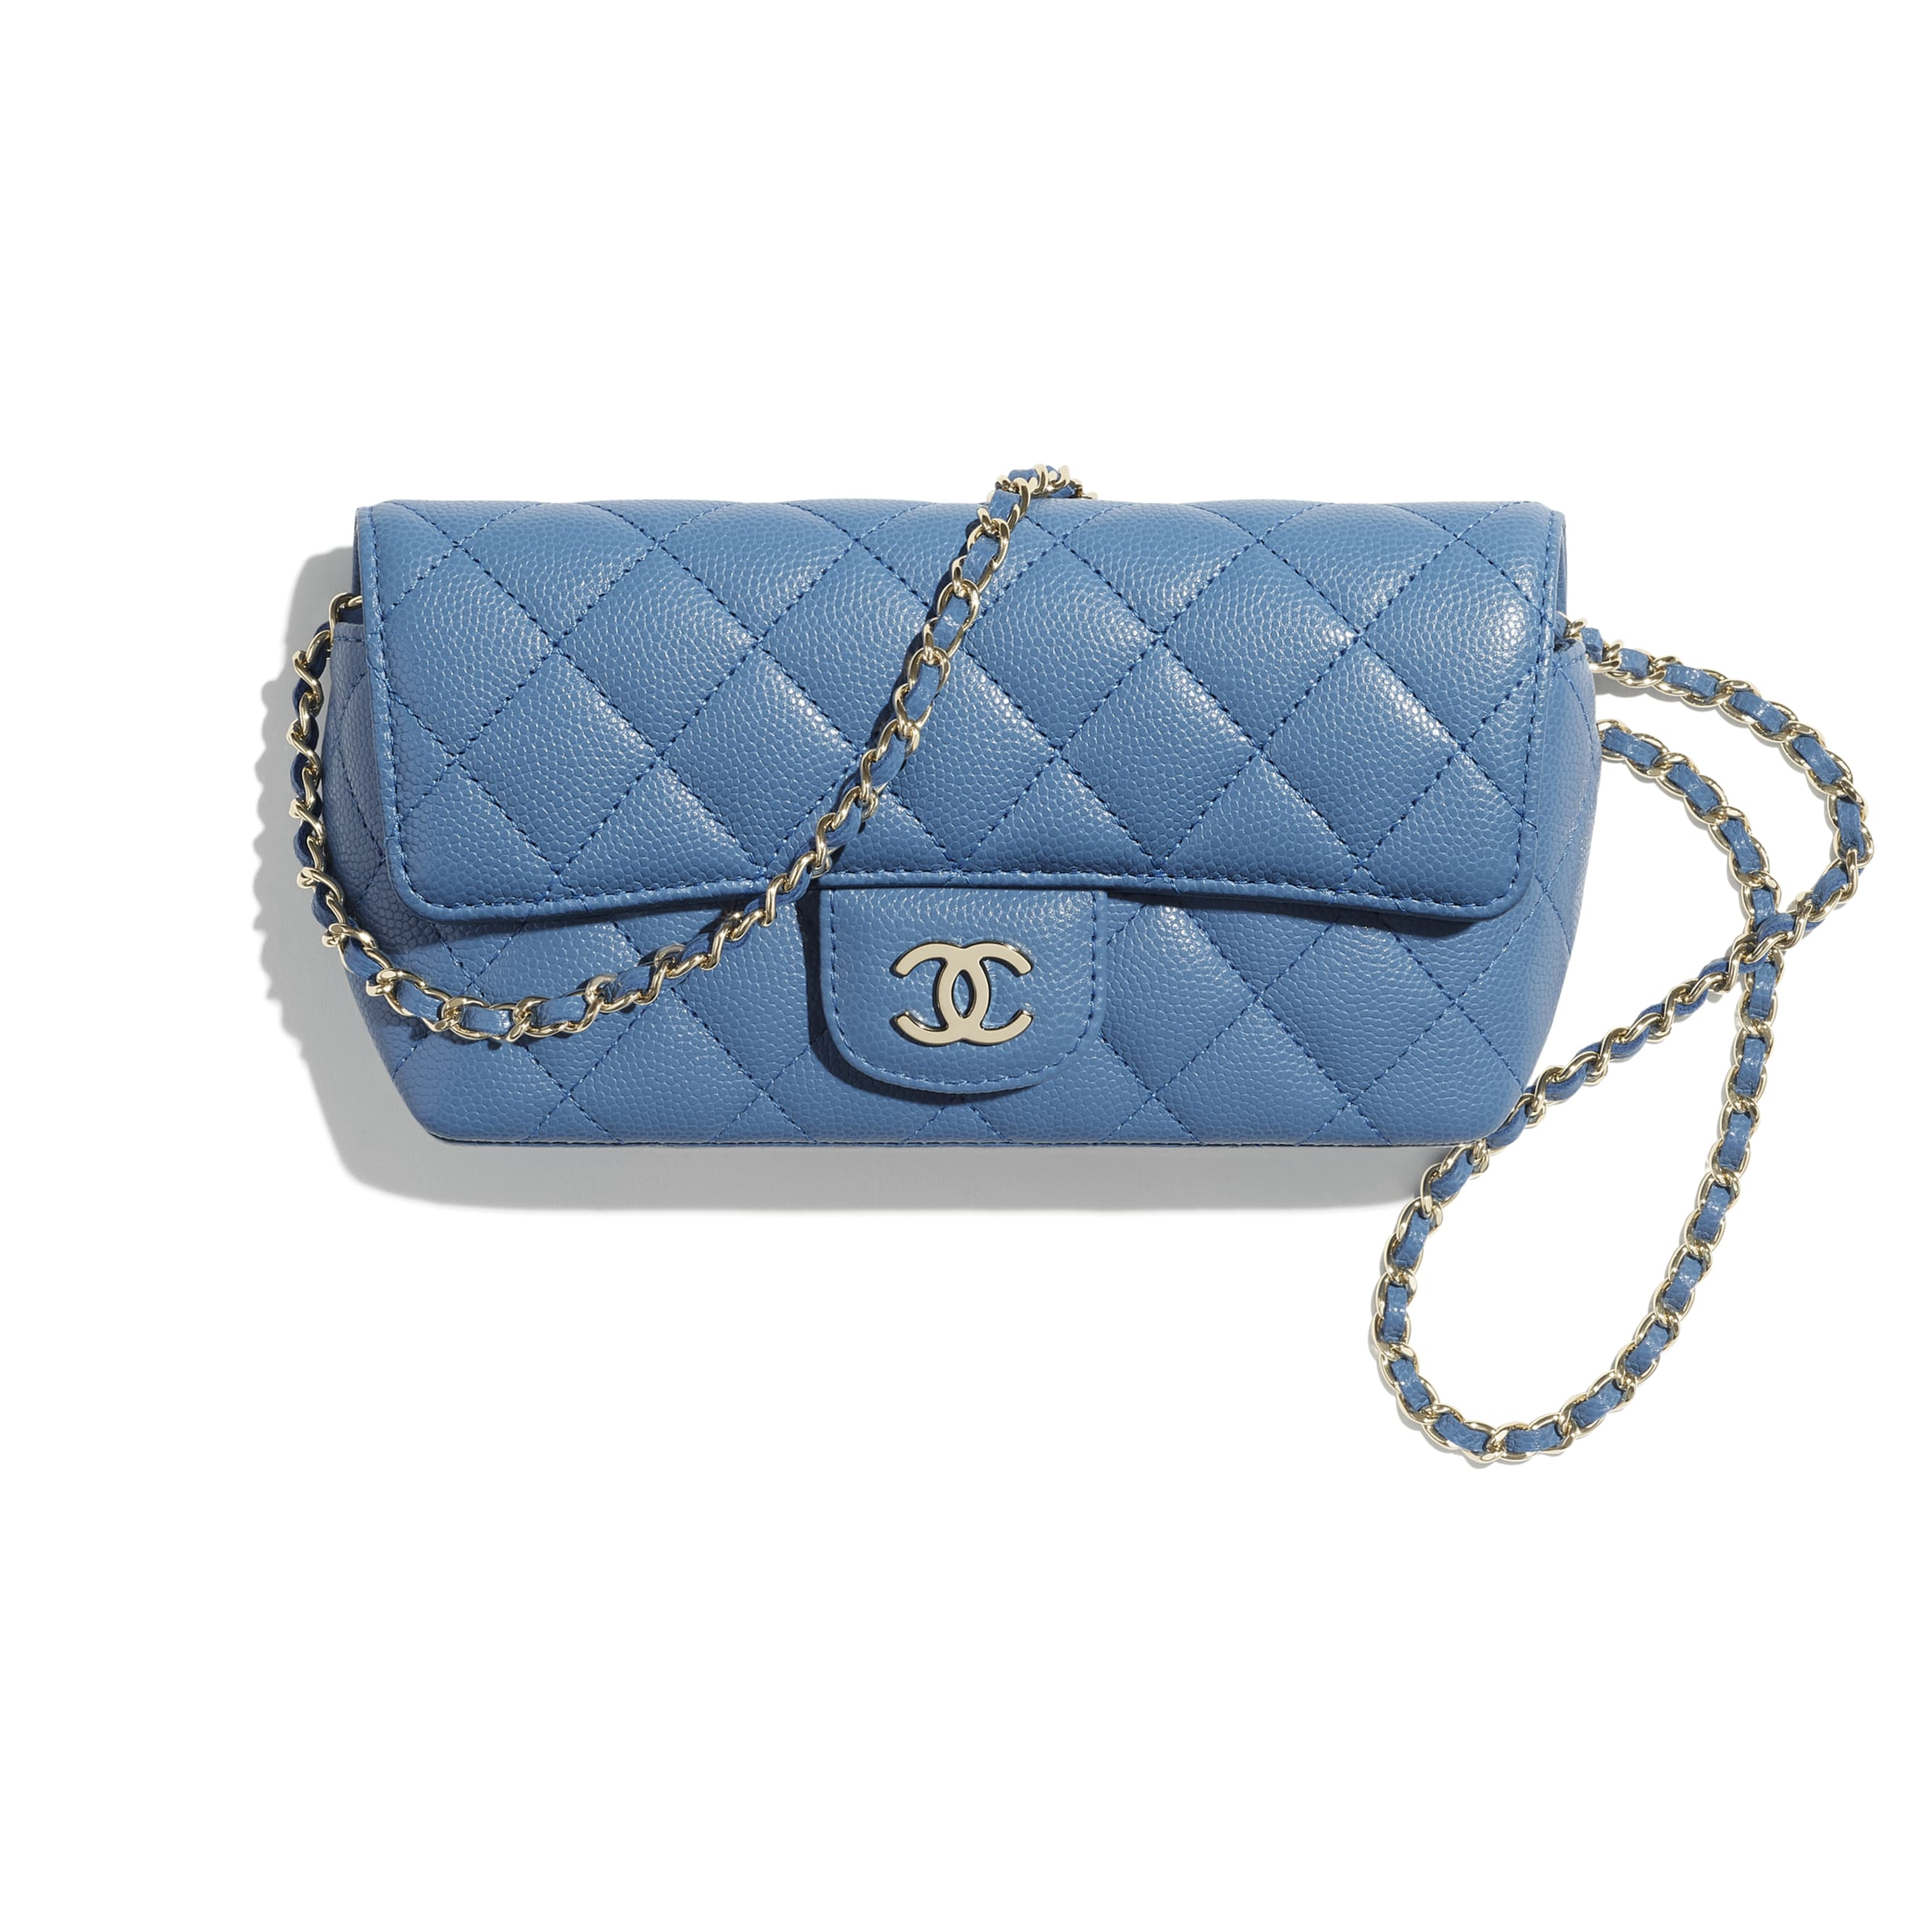 Glasses Case with Classic Chain - Blue - Grained Calfskin & Gold-Tone Metal - CHANEL - Default view - see standard sized version